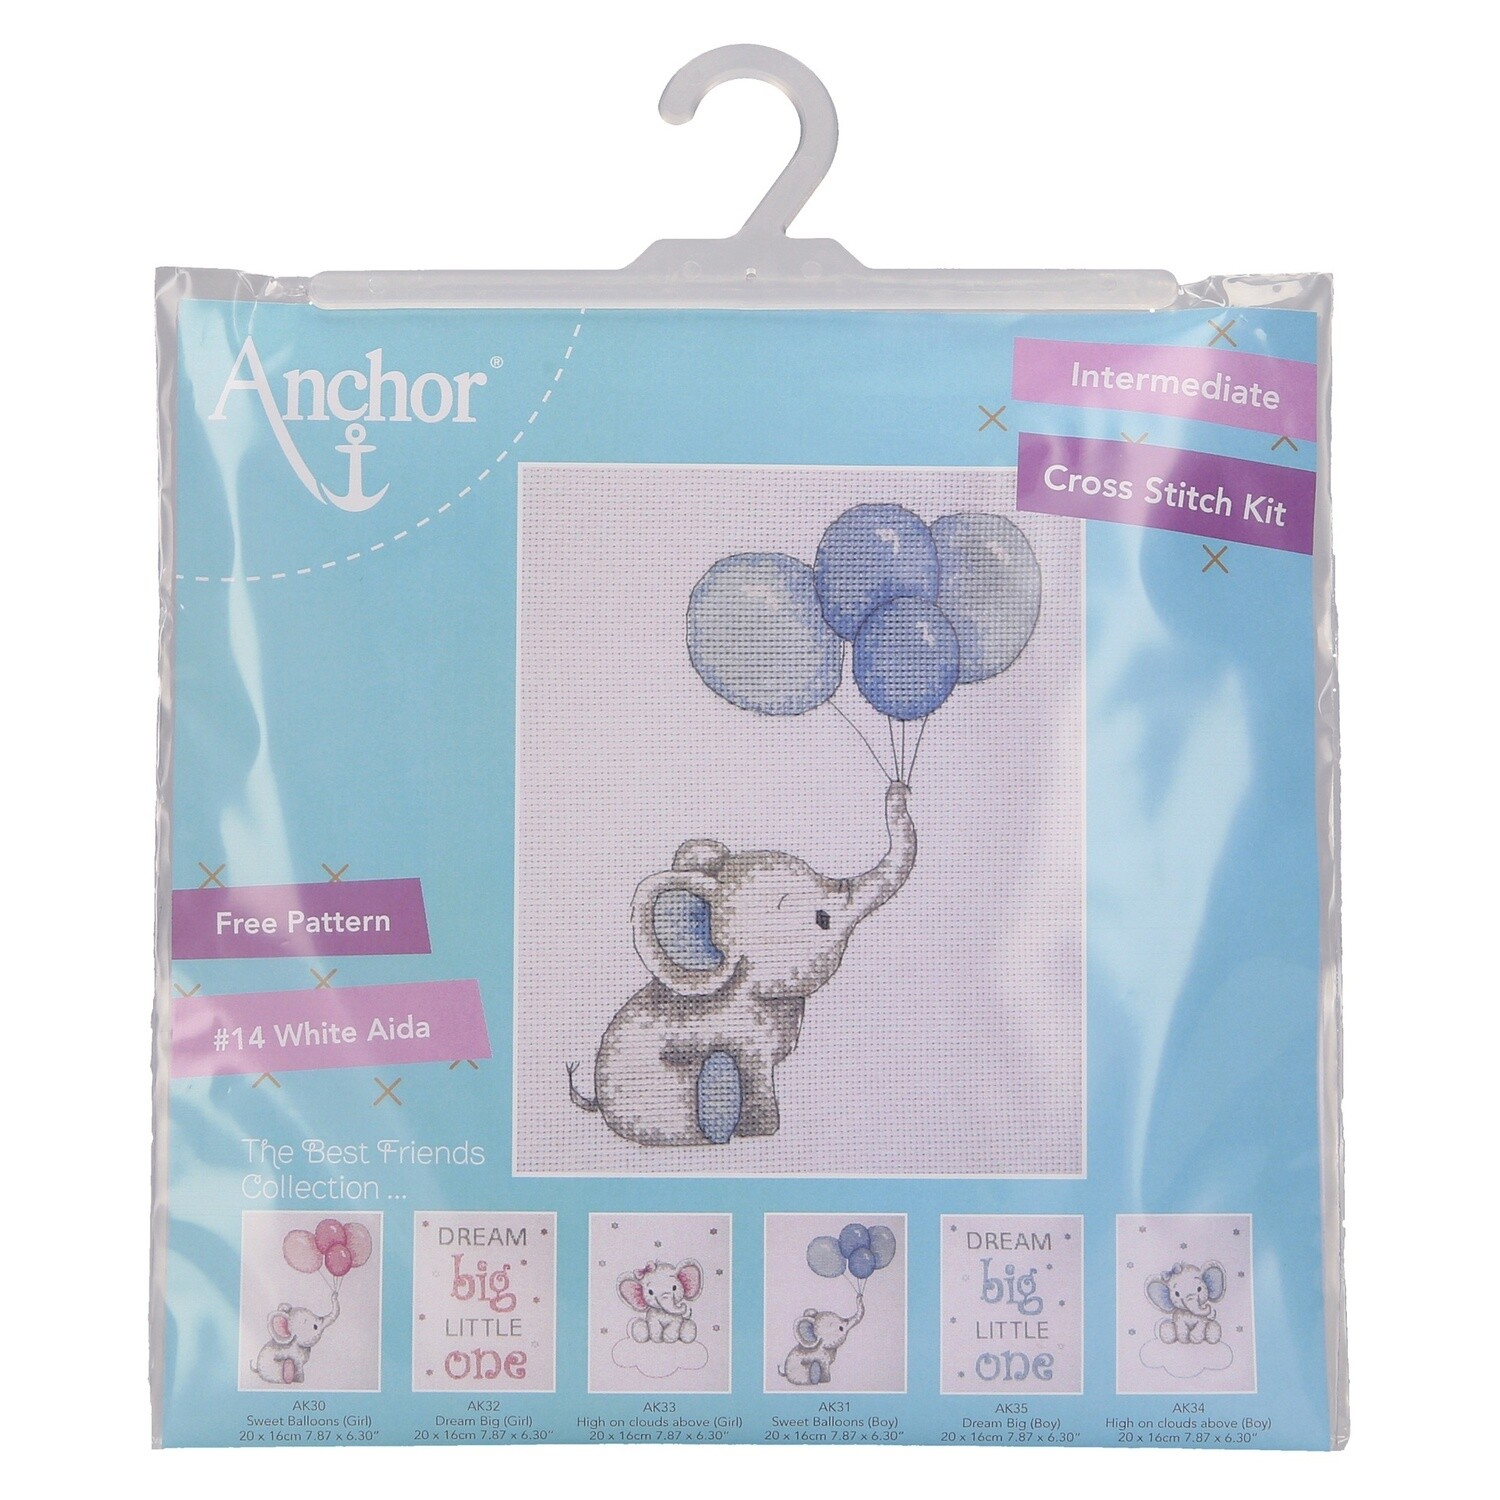 Counted Cross Stitch Kit: Boy Balloons